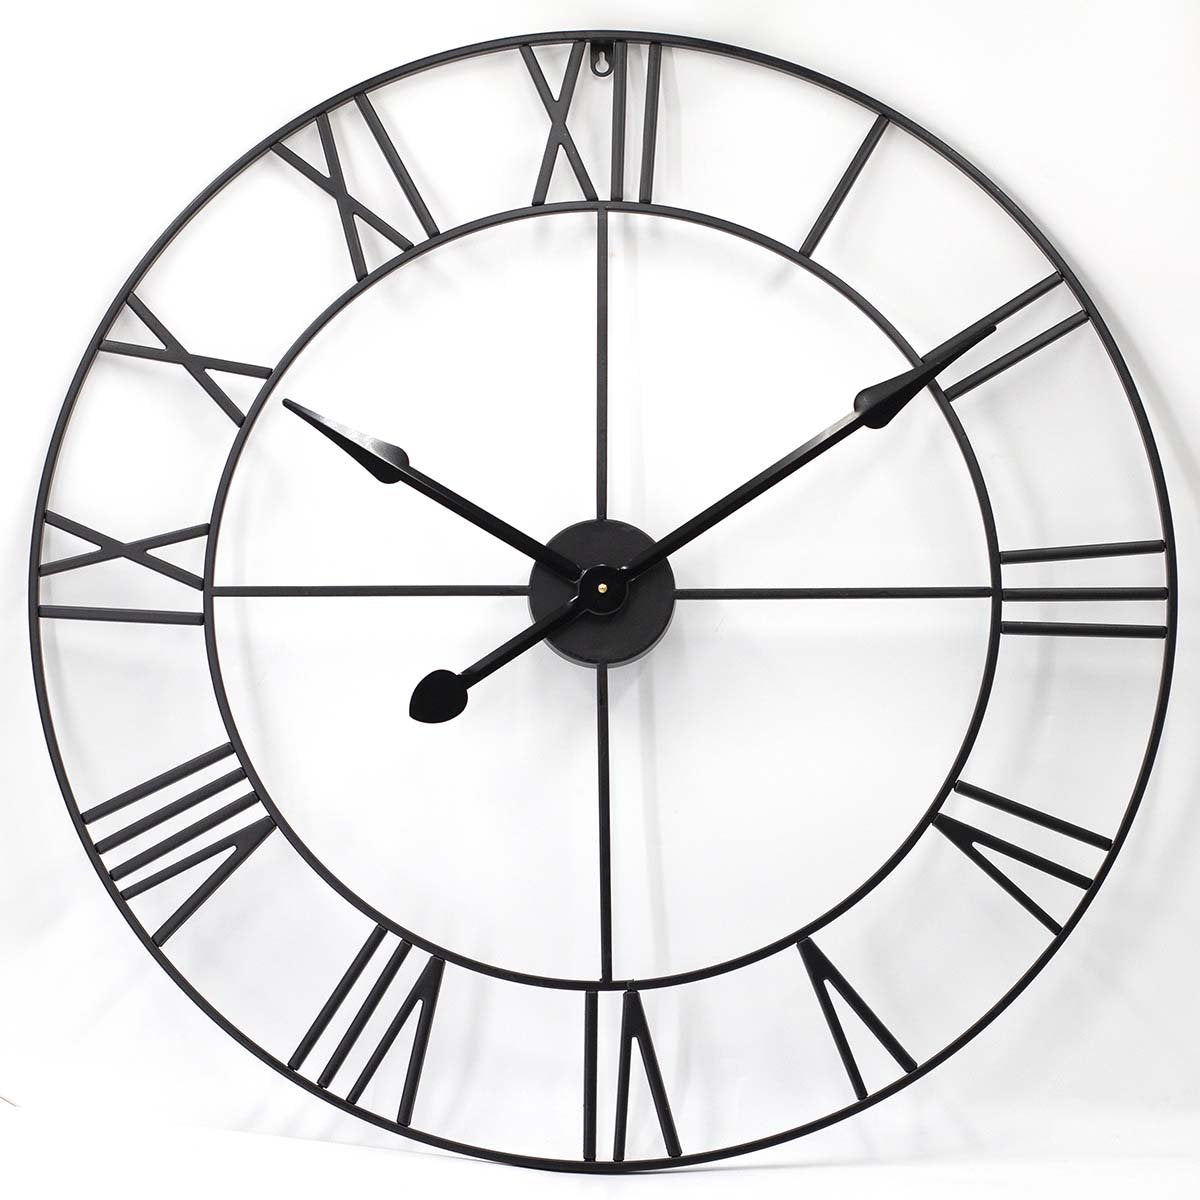 Toki Karl Extra Large Metal Roman Skeleton Wall Clock Black 80cm 23064 1